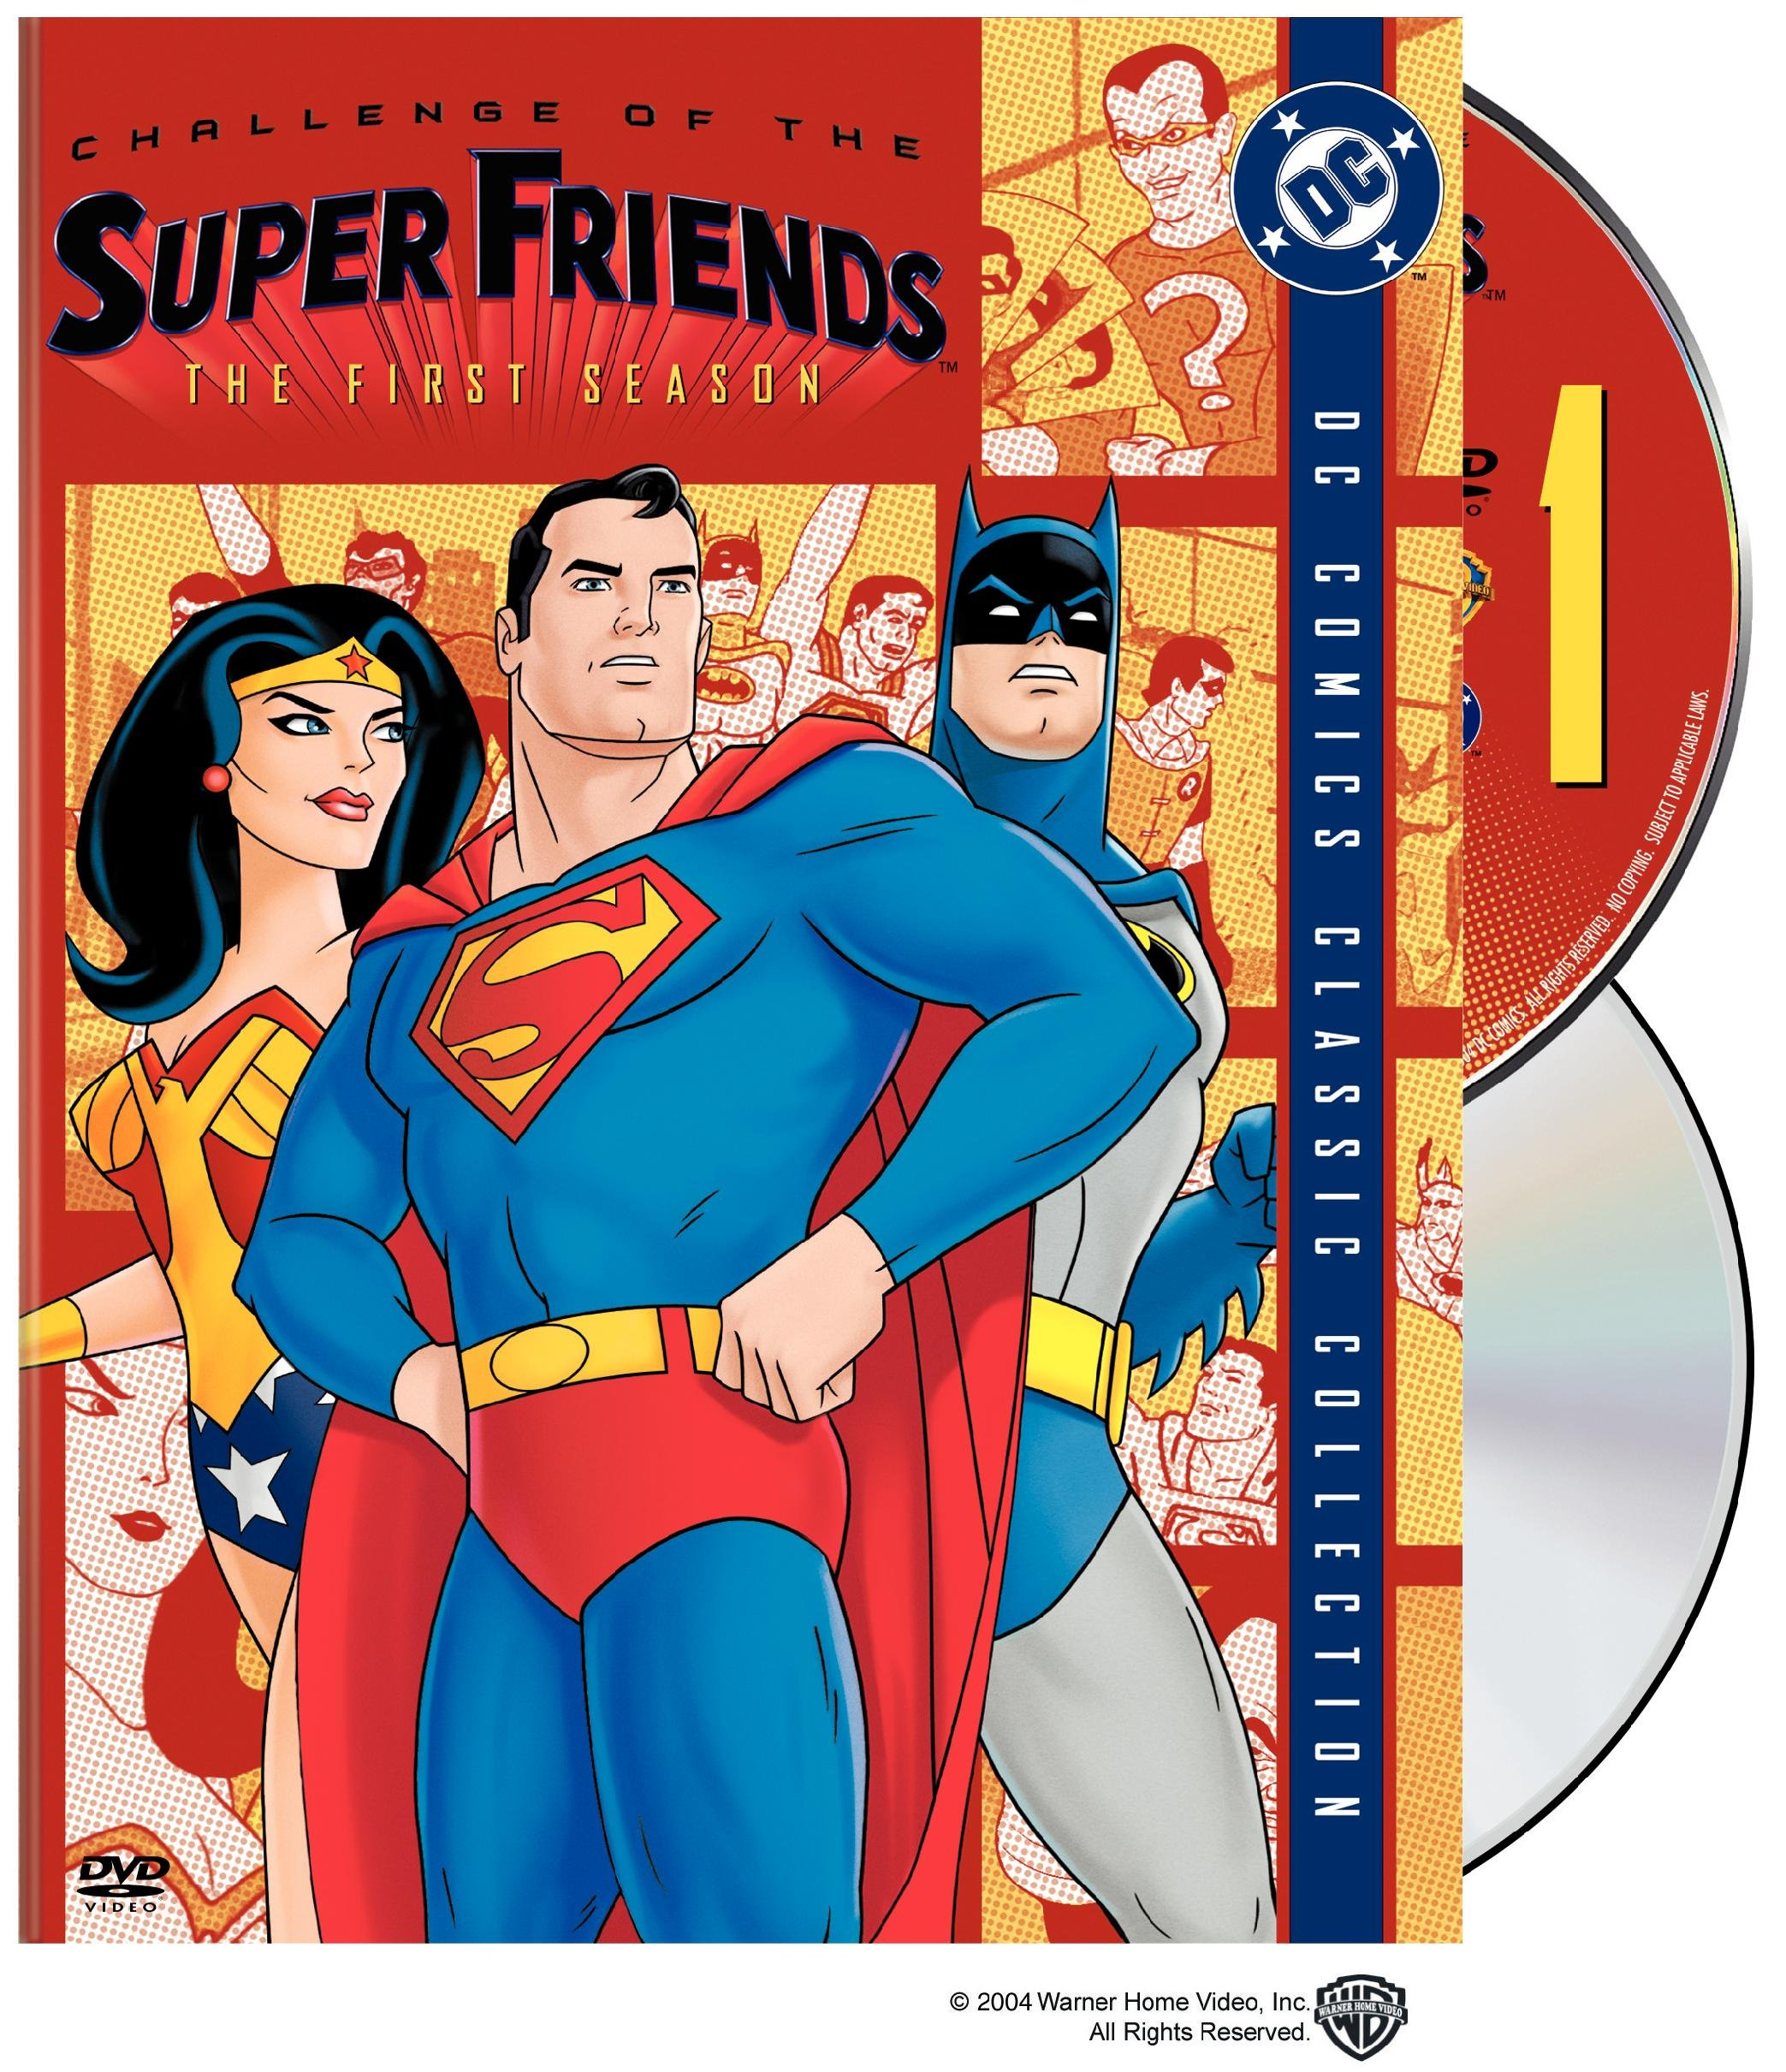 DVD : Challenge of the SuperFriends: The First Season (Dubbed, Digipack Packaging, , Standard Screen, 2 Disc)